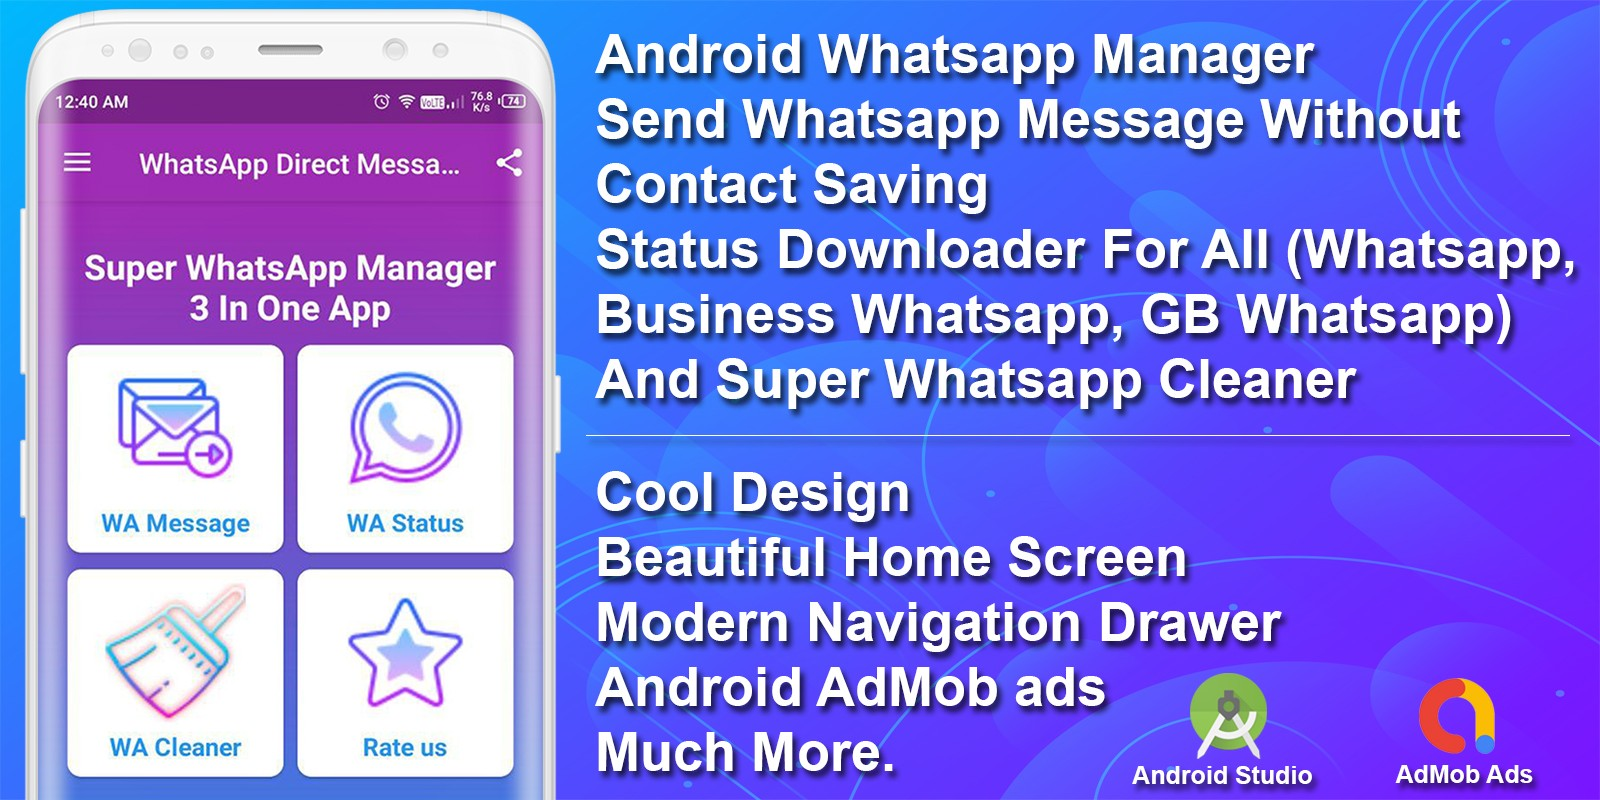 Whatsapp Manager Android App Source Code